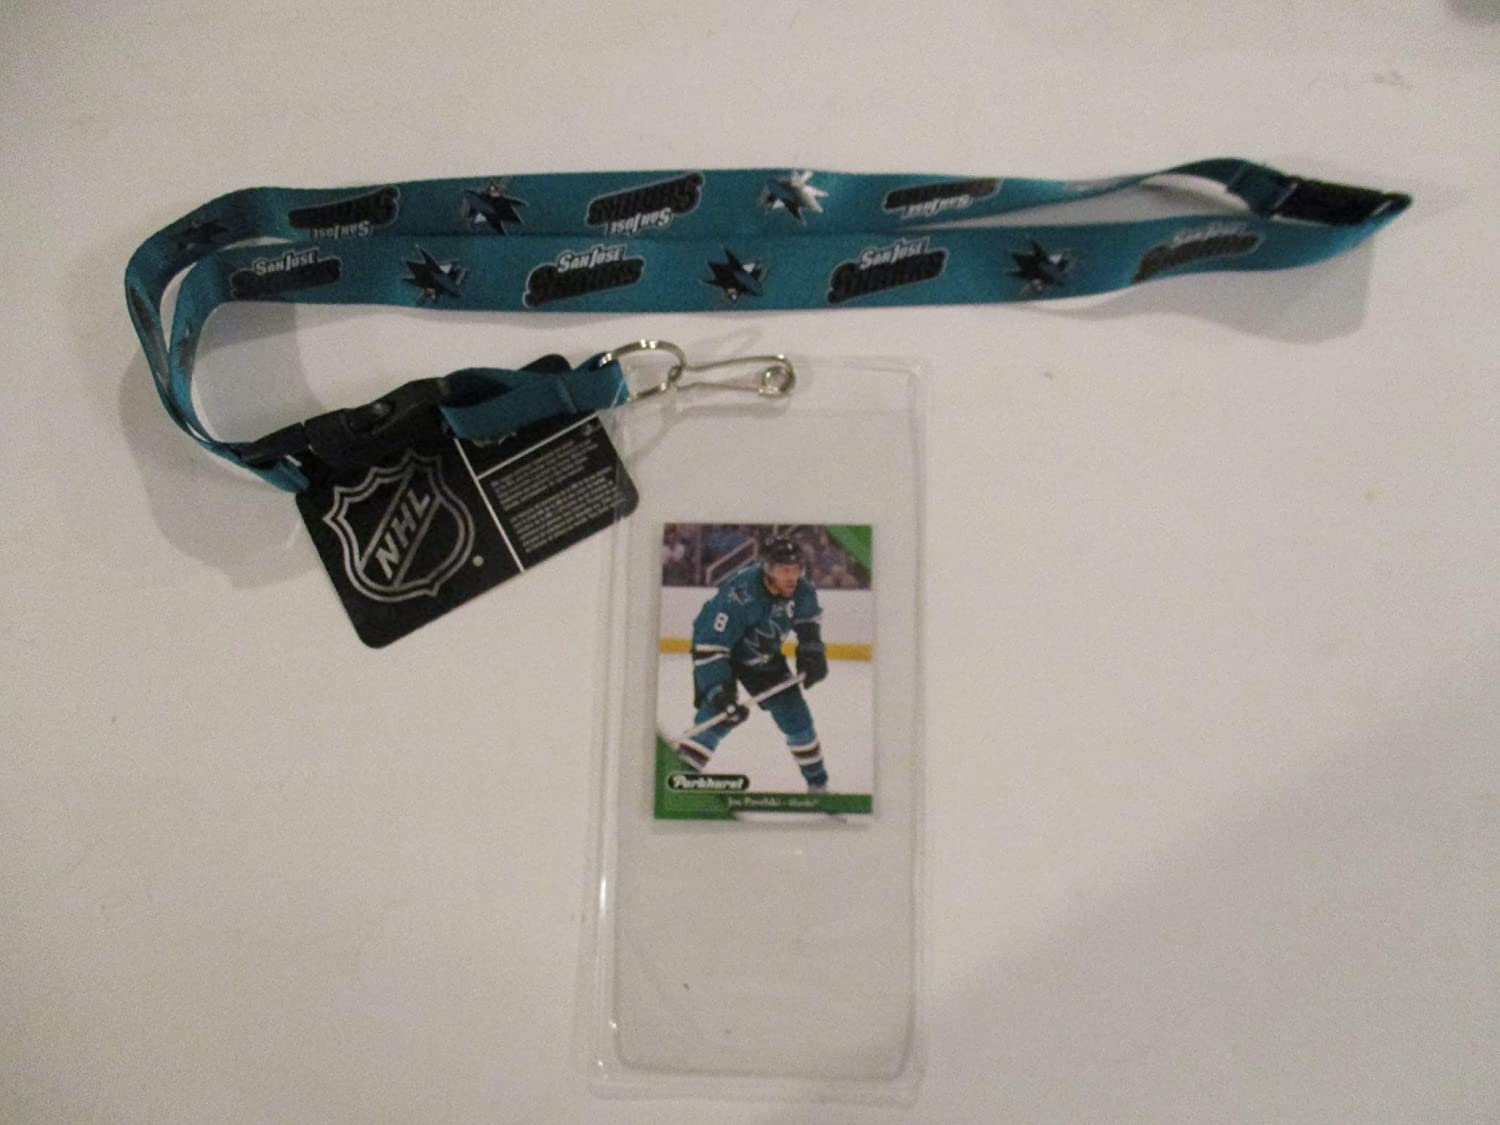 SAN JOSE SHARKS TEAL LANYARD WITH TICKET HOLDER PLUS COLLECTIBLE PLAYER CARD